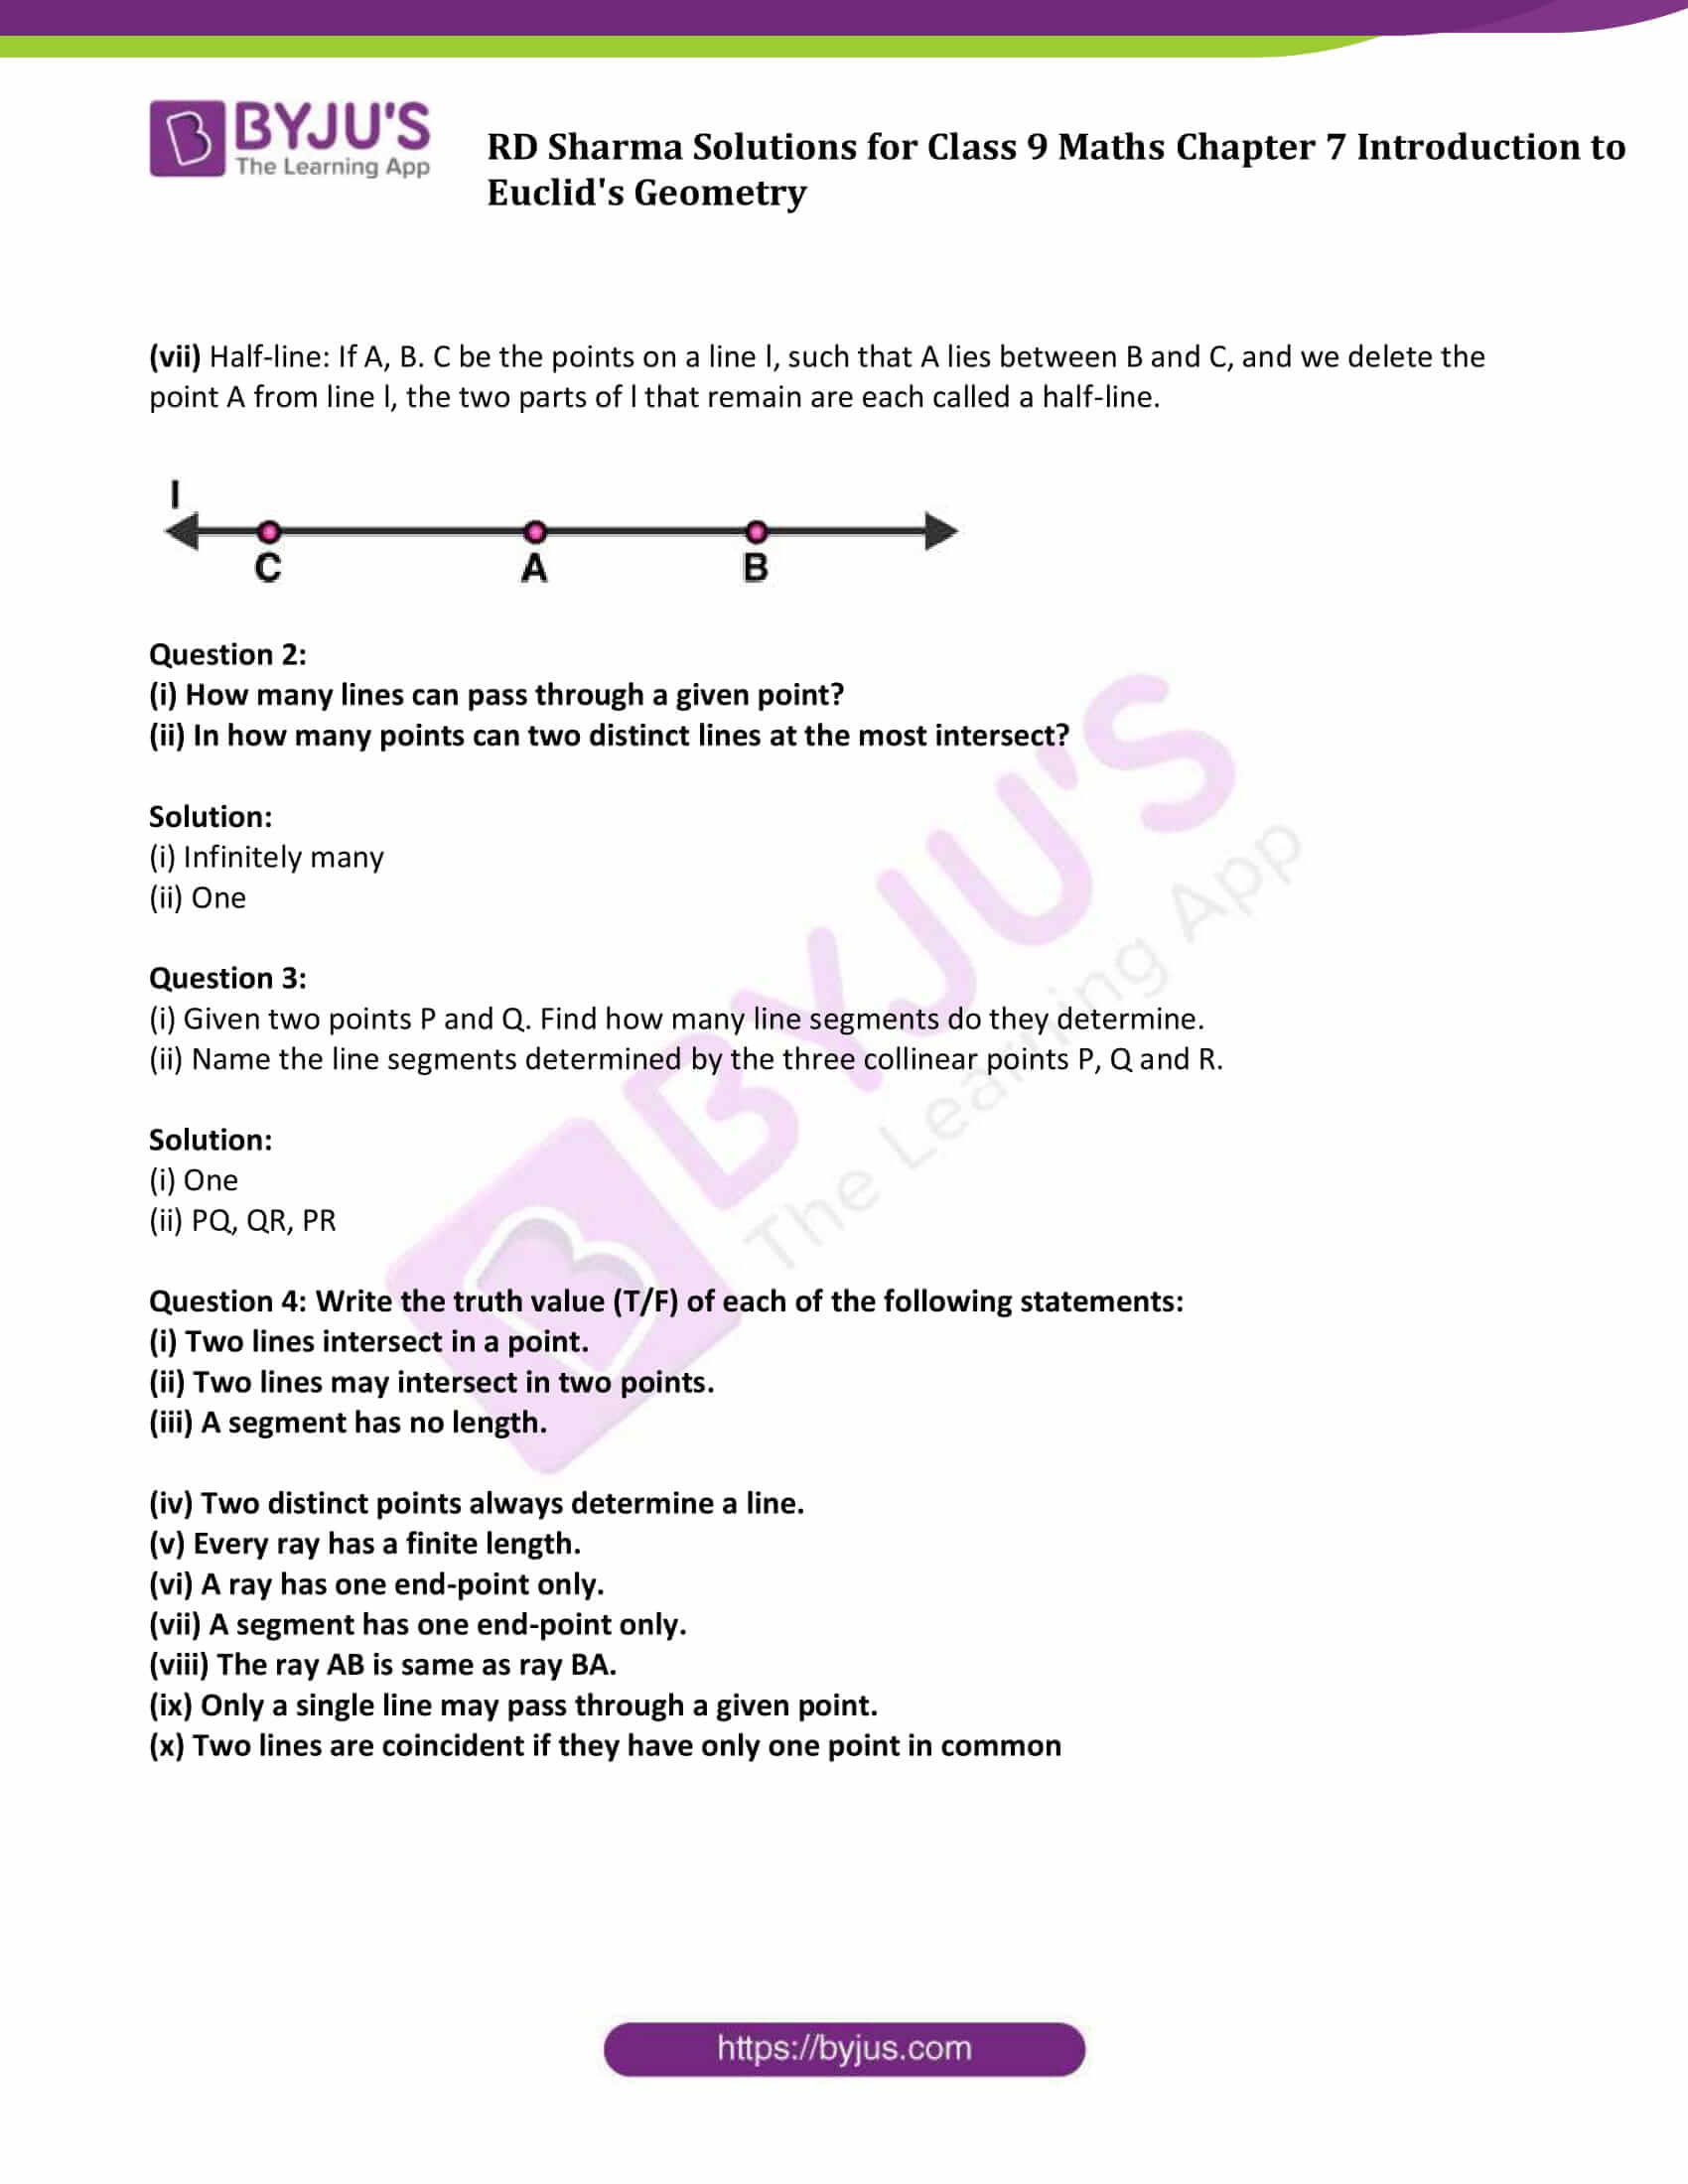 RD Sharma Solution class 9 Maths Chapter 7 Introduction to Euclids Geometry 3